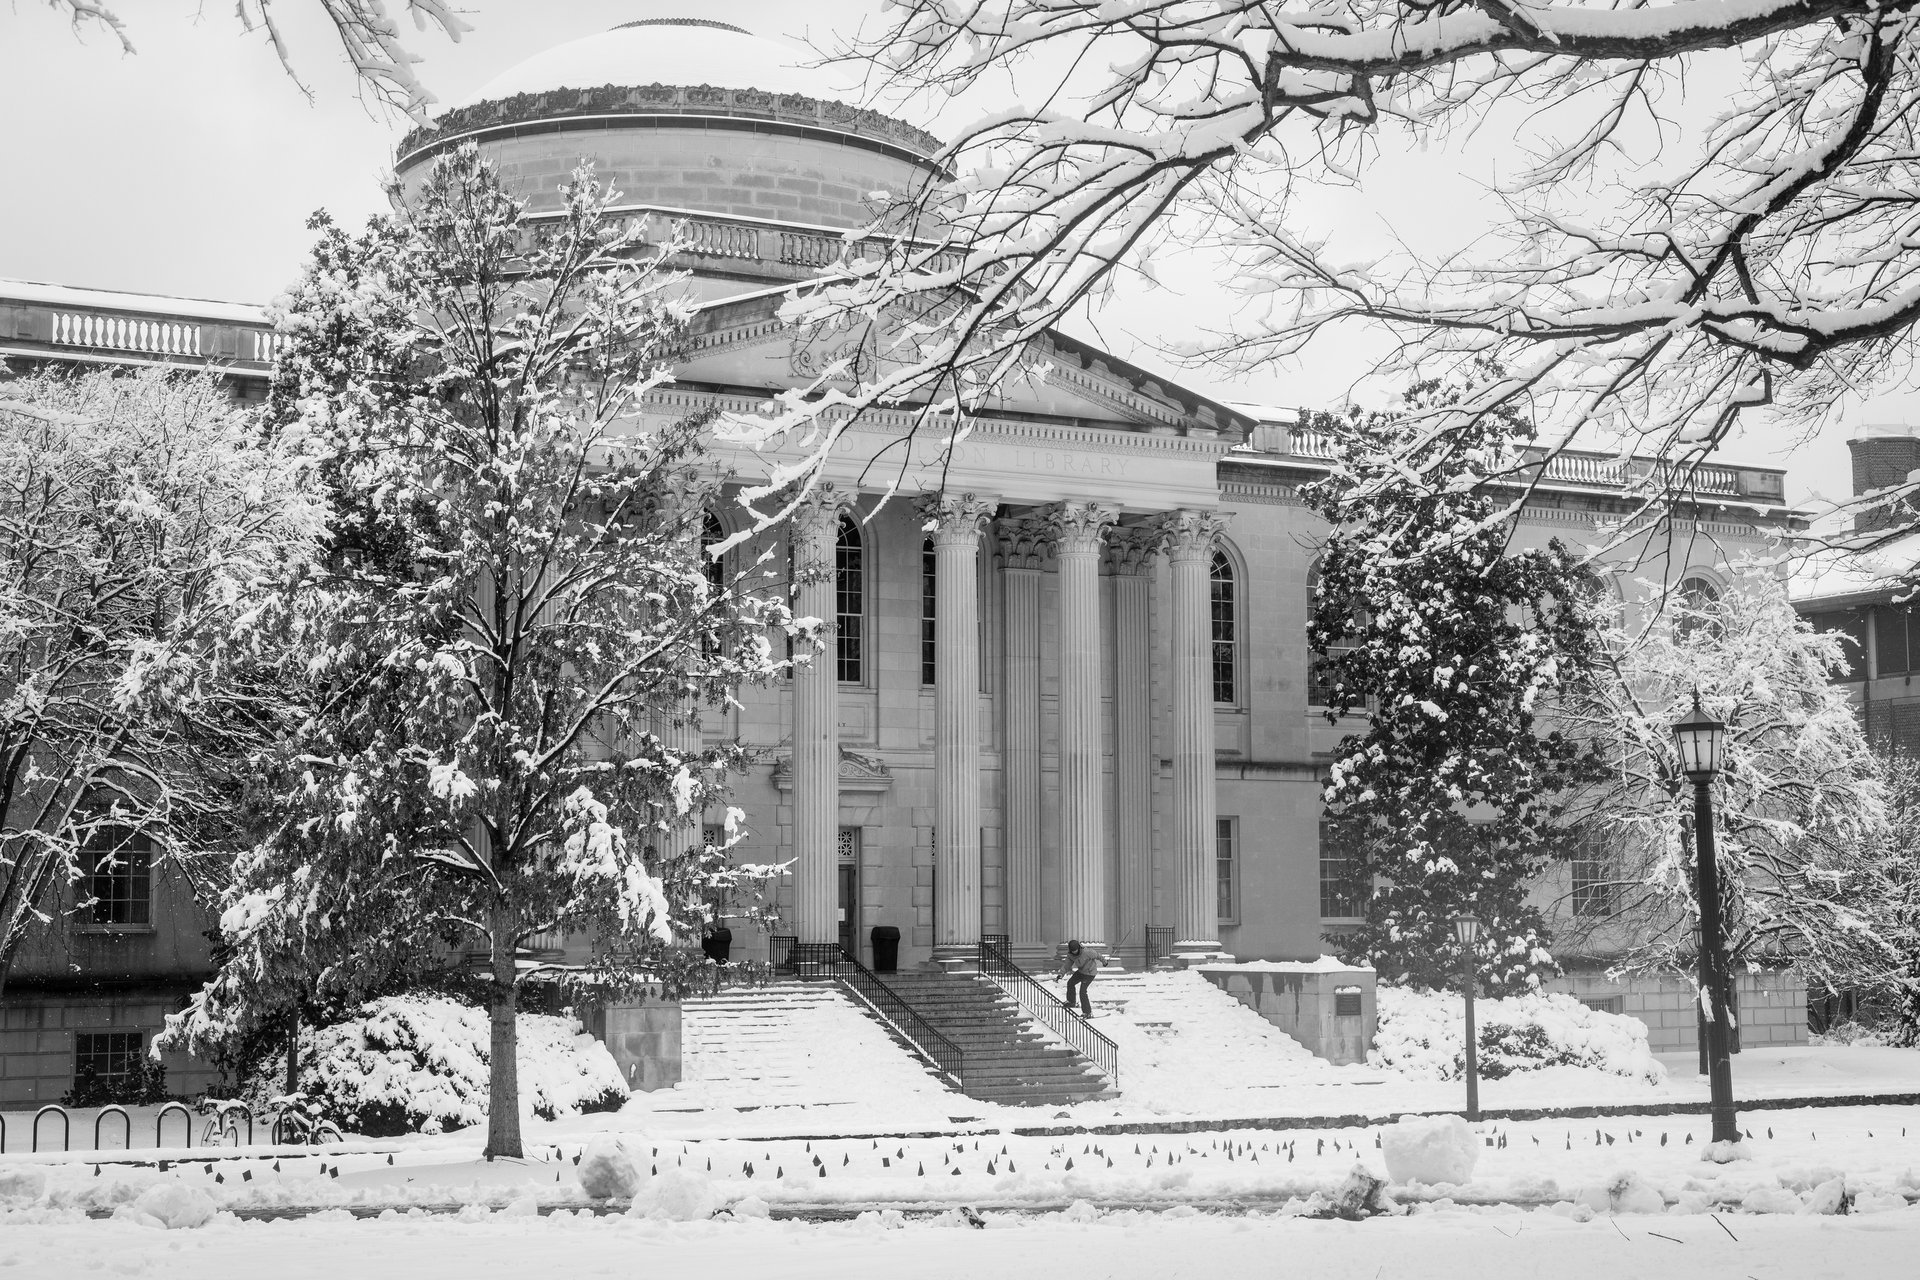 Snow Day at the University of North Carolina